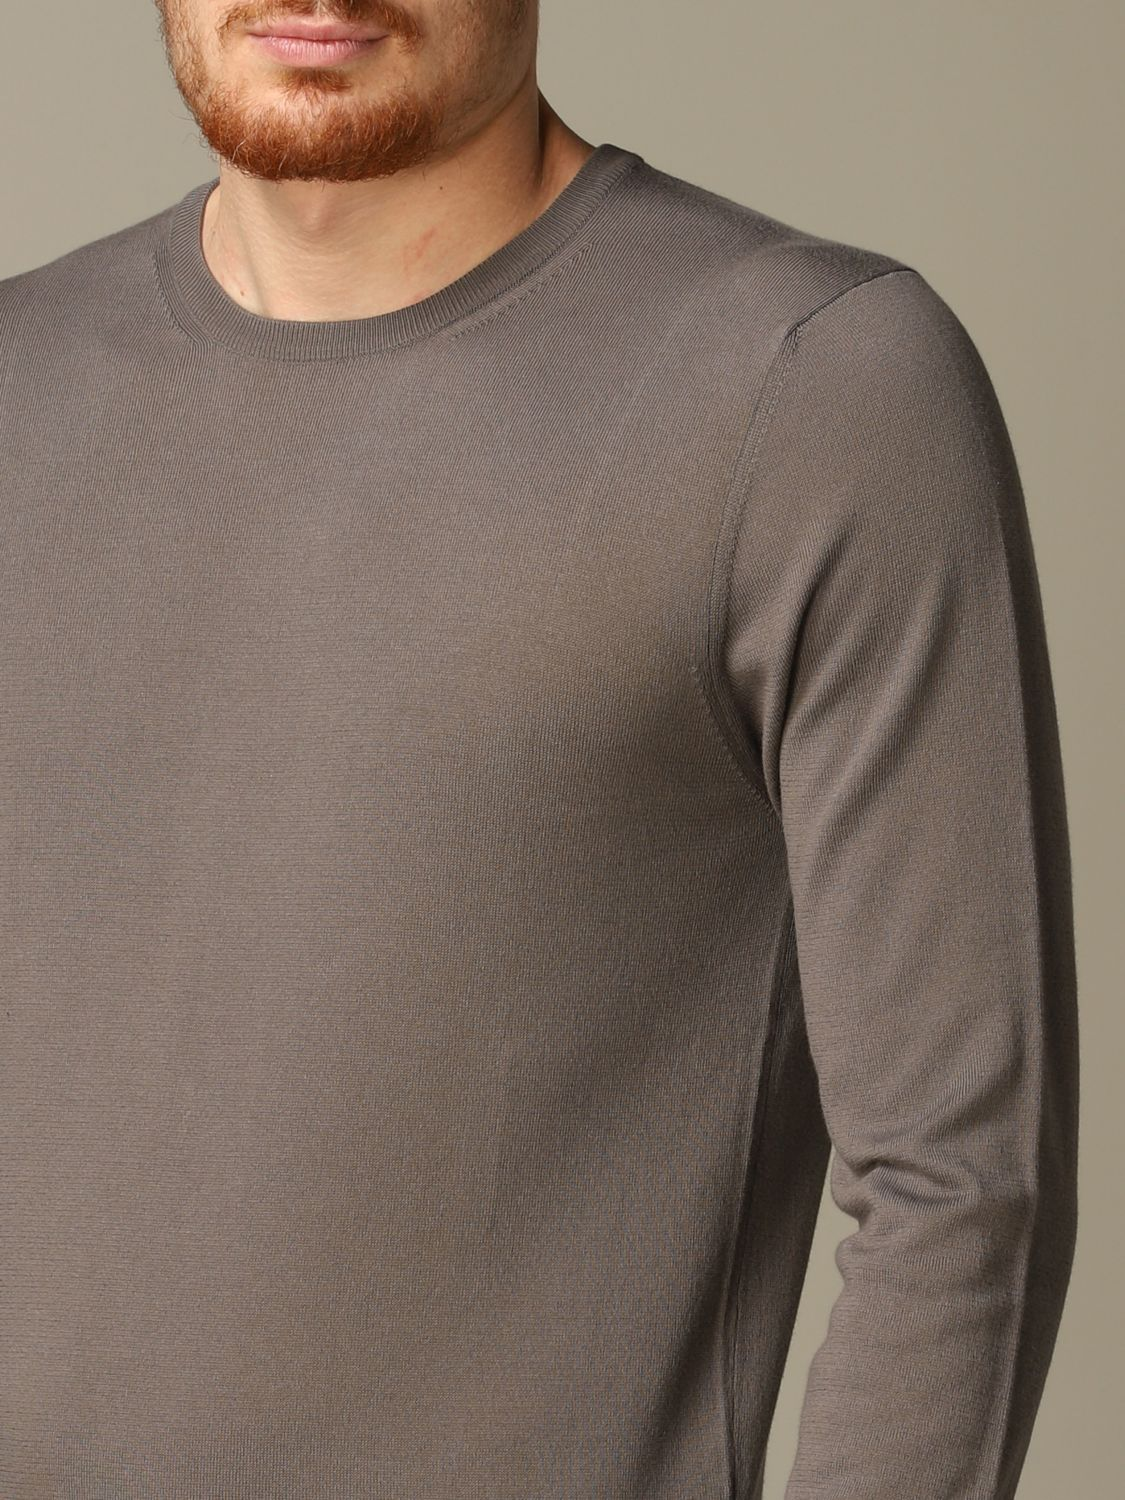 Sweater Cruciani: Sweater men Cruciani dove grey 3